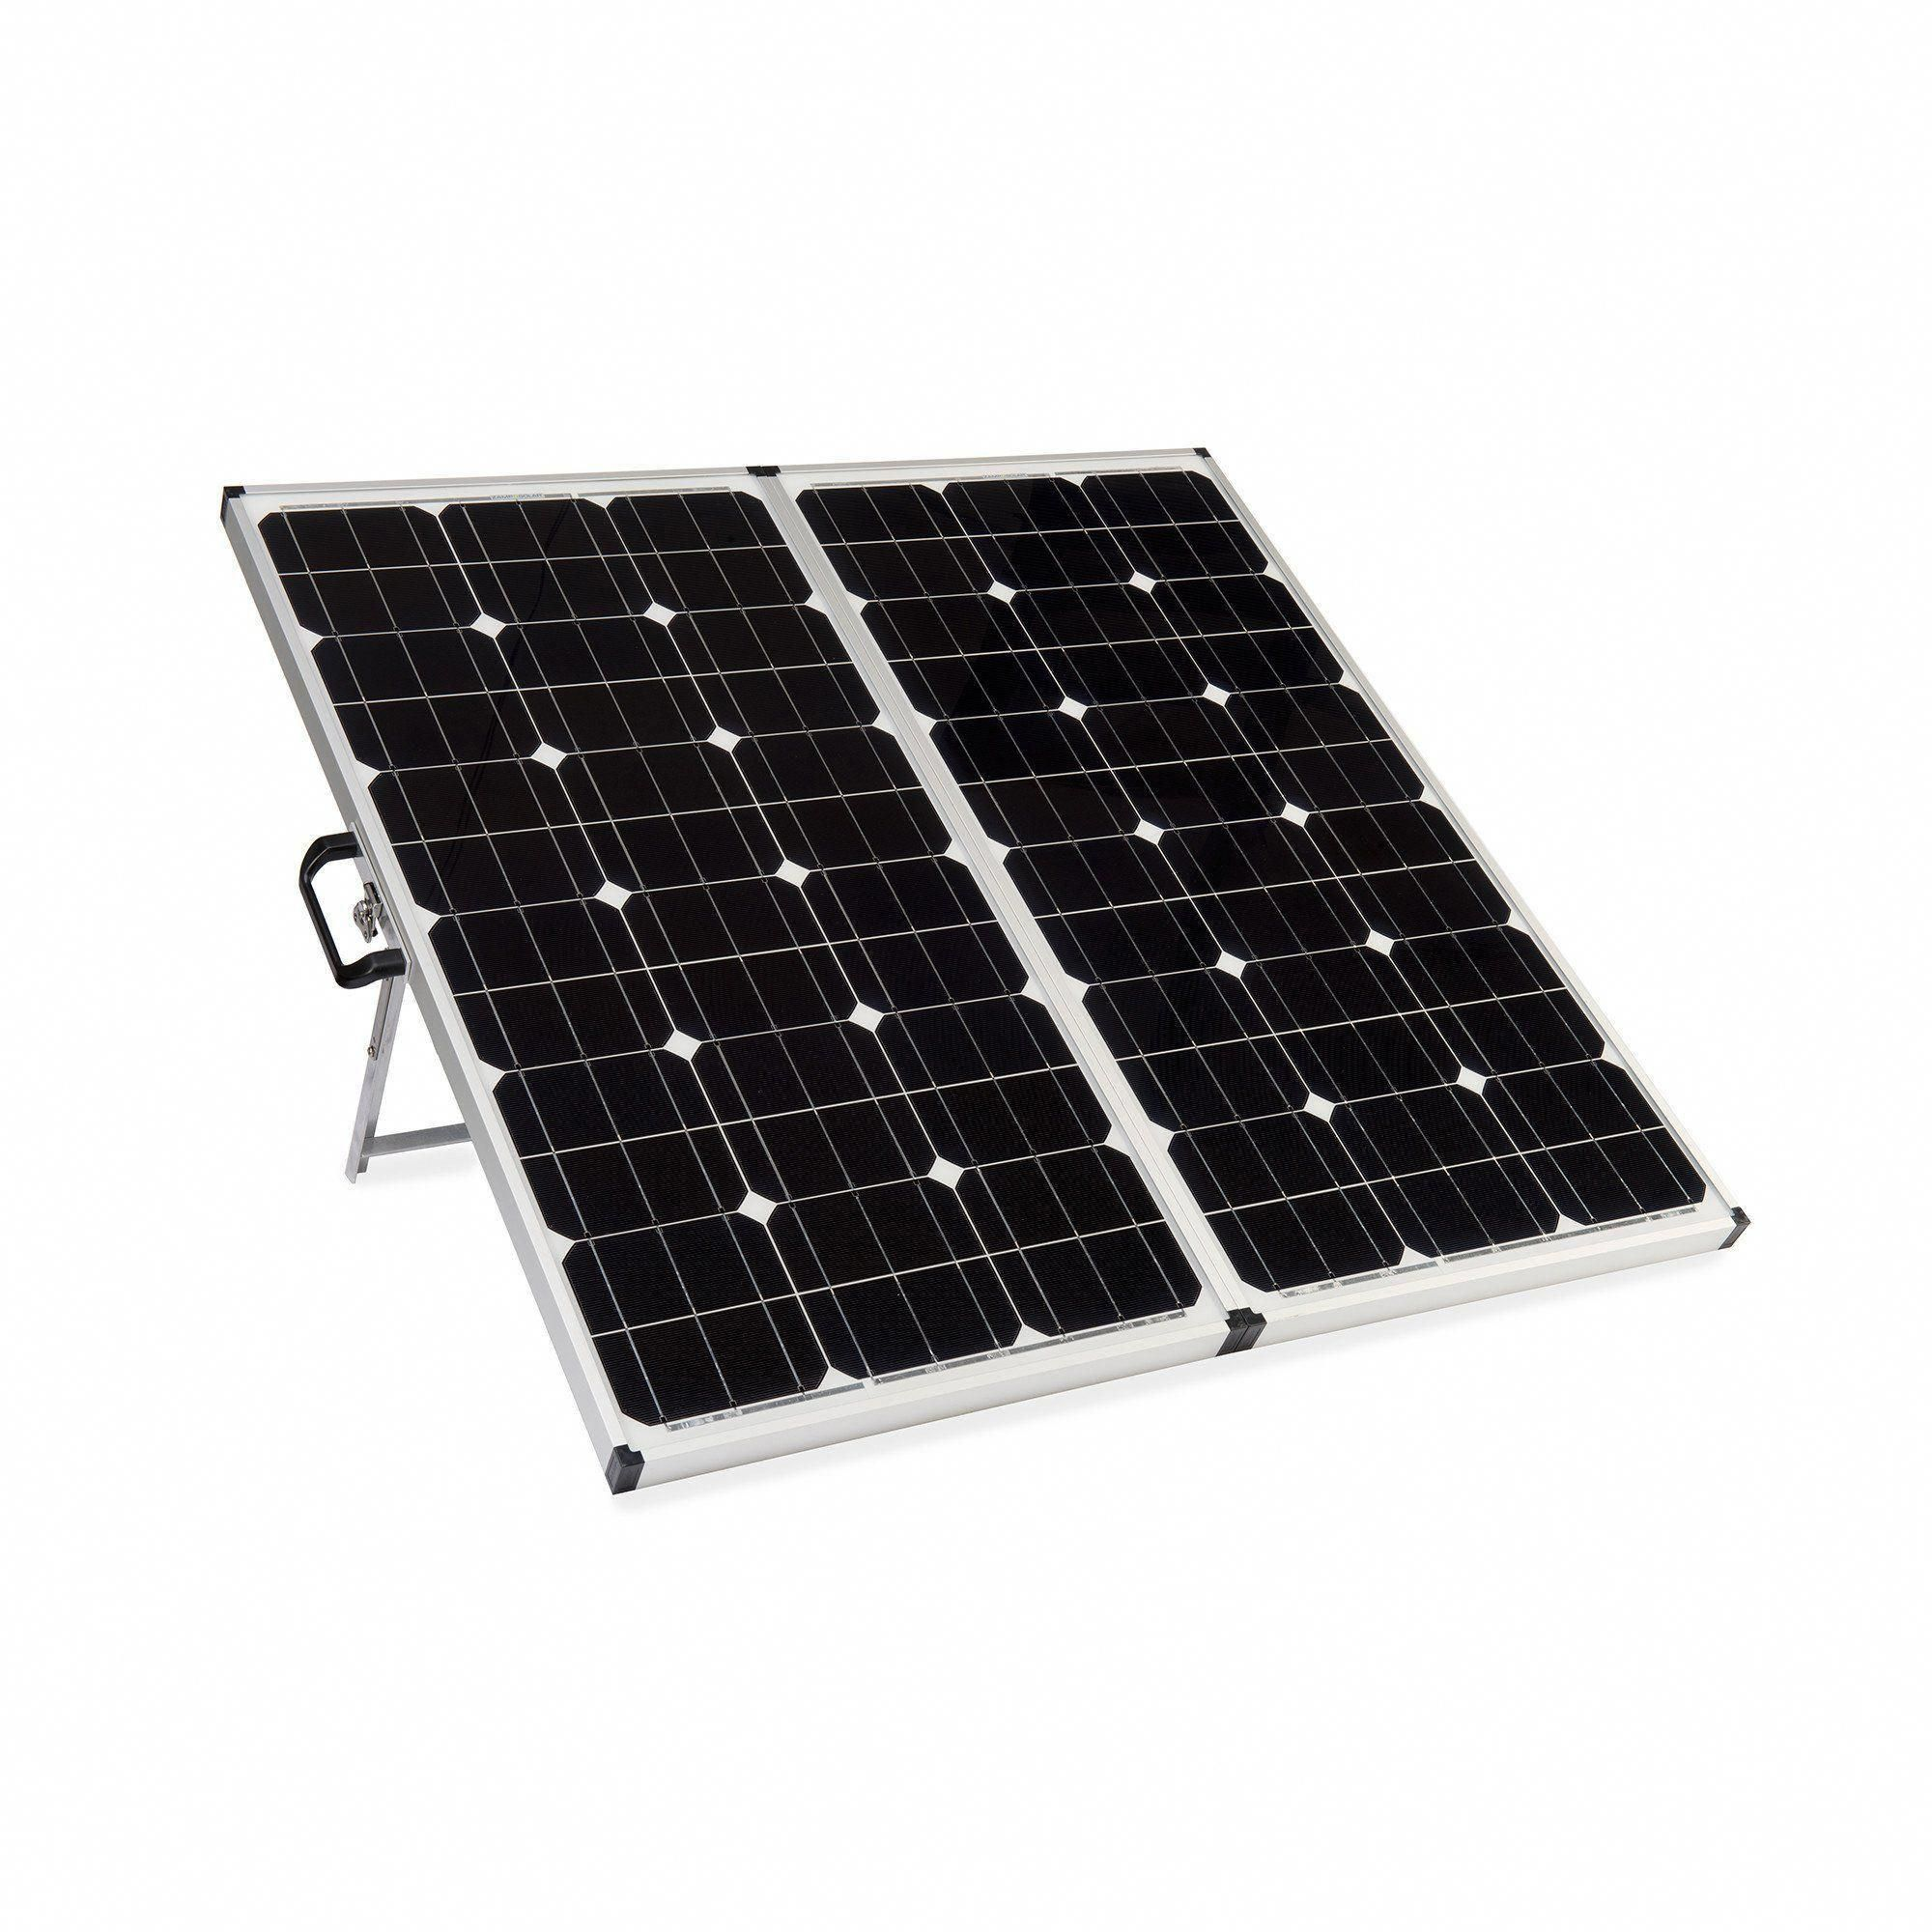 Please Allow 2 4 Weeks For Shipment The Most Popular Large Sized Universal Portable Solar Kit Will Generate 1 In 2020 Solar Panels Best Solar Panels Solar Energy Diy